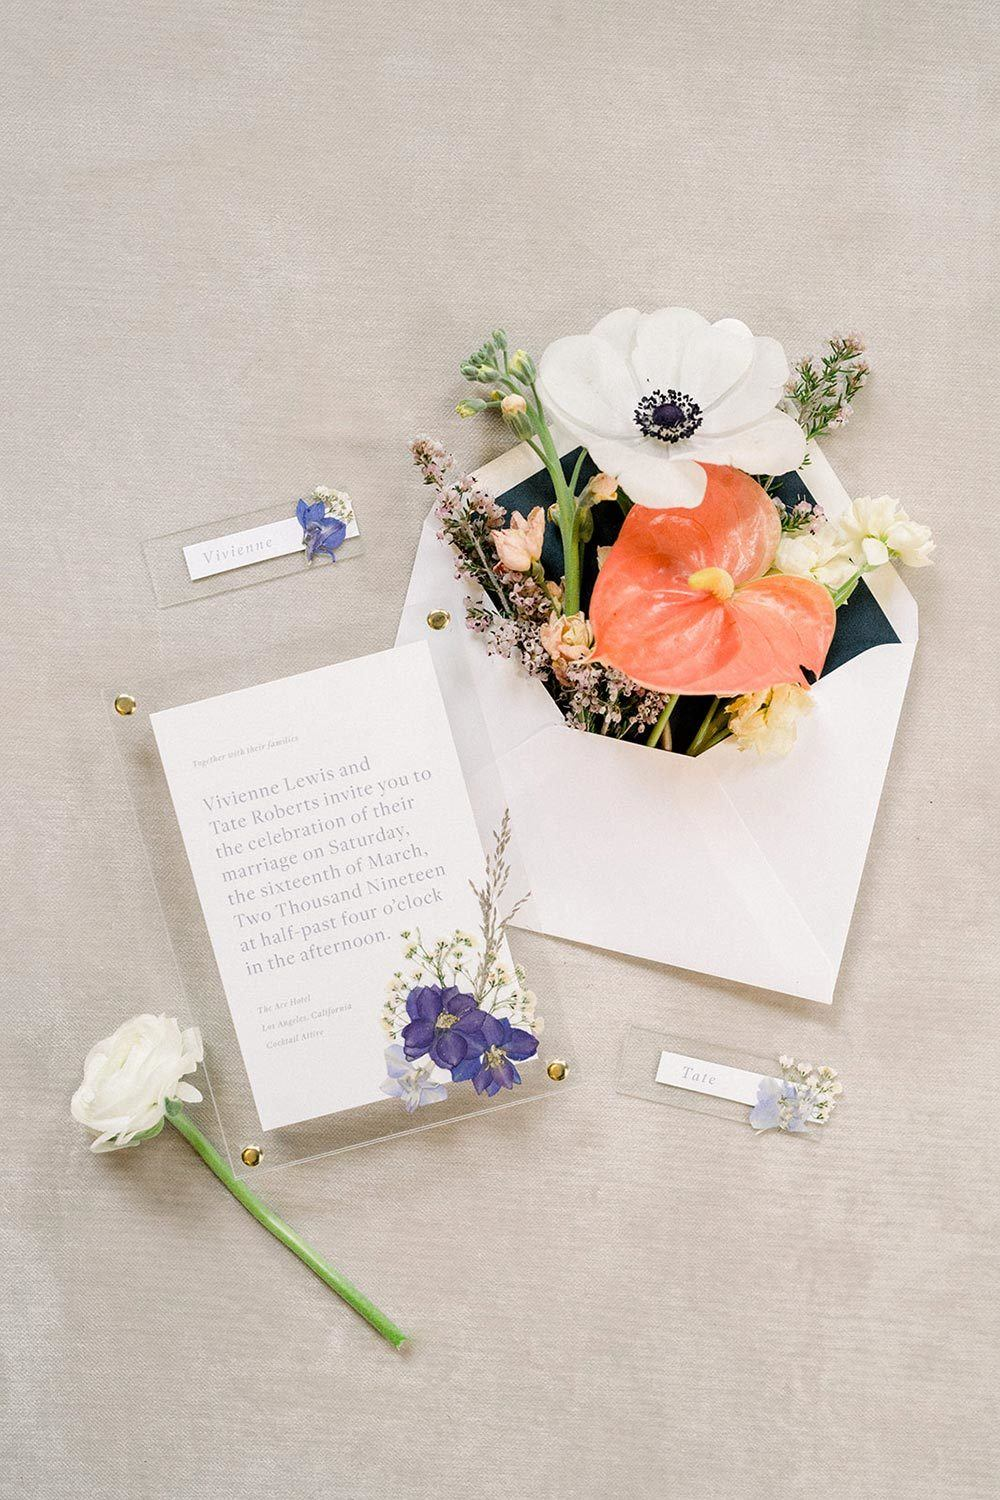 acrylic wedding invitations with pressed flowers and bold envelopes